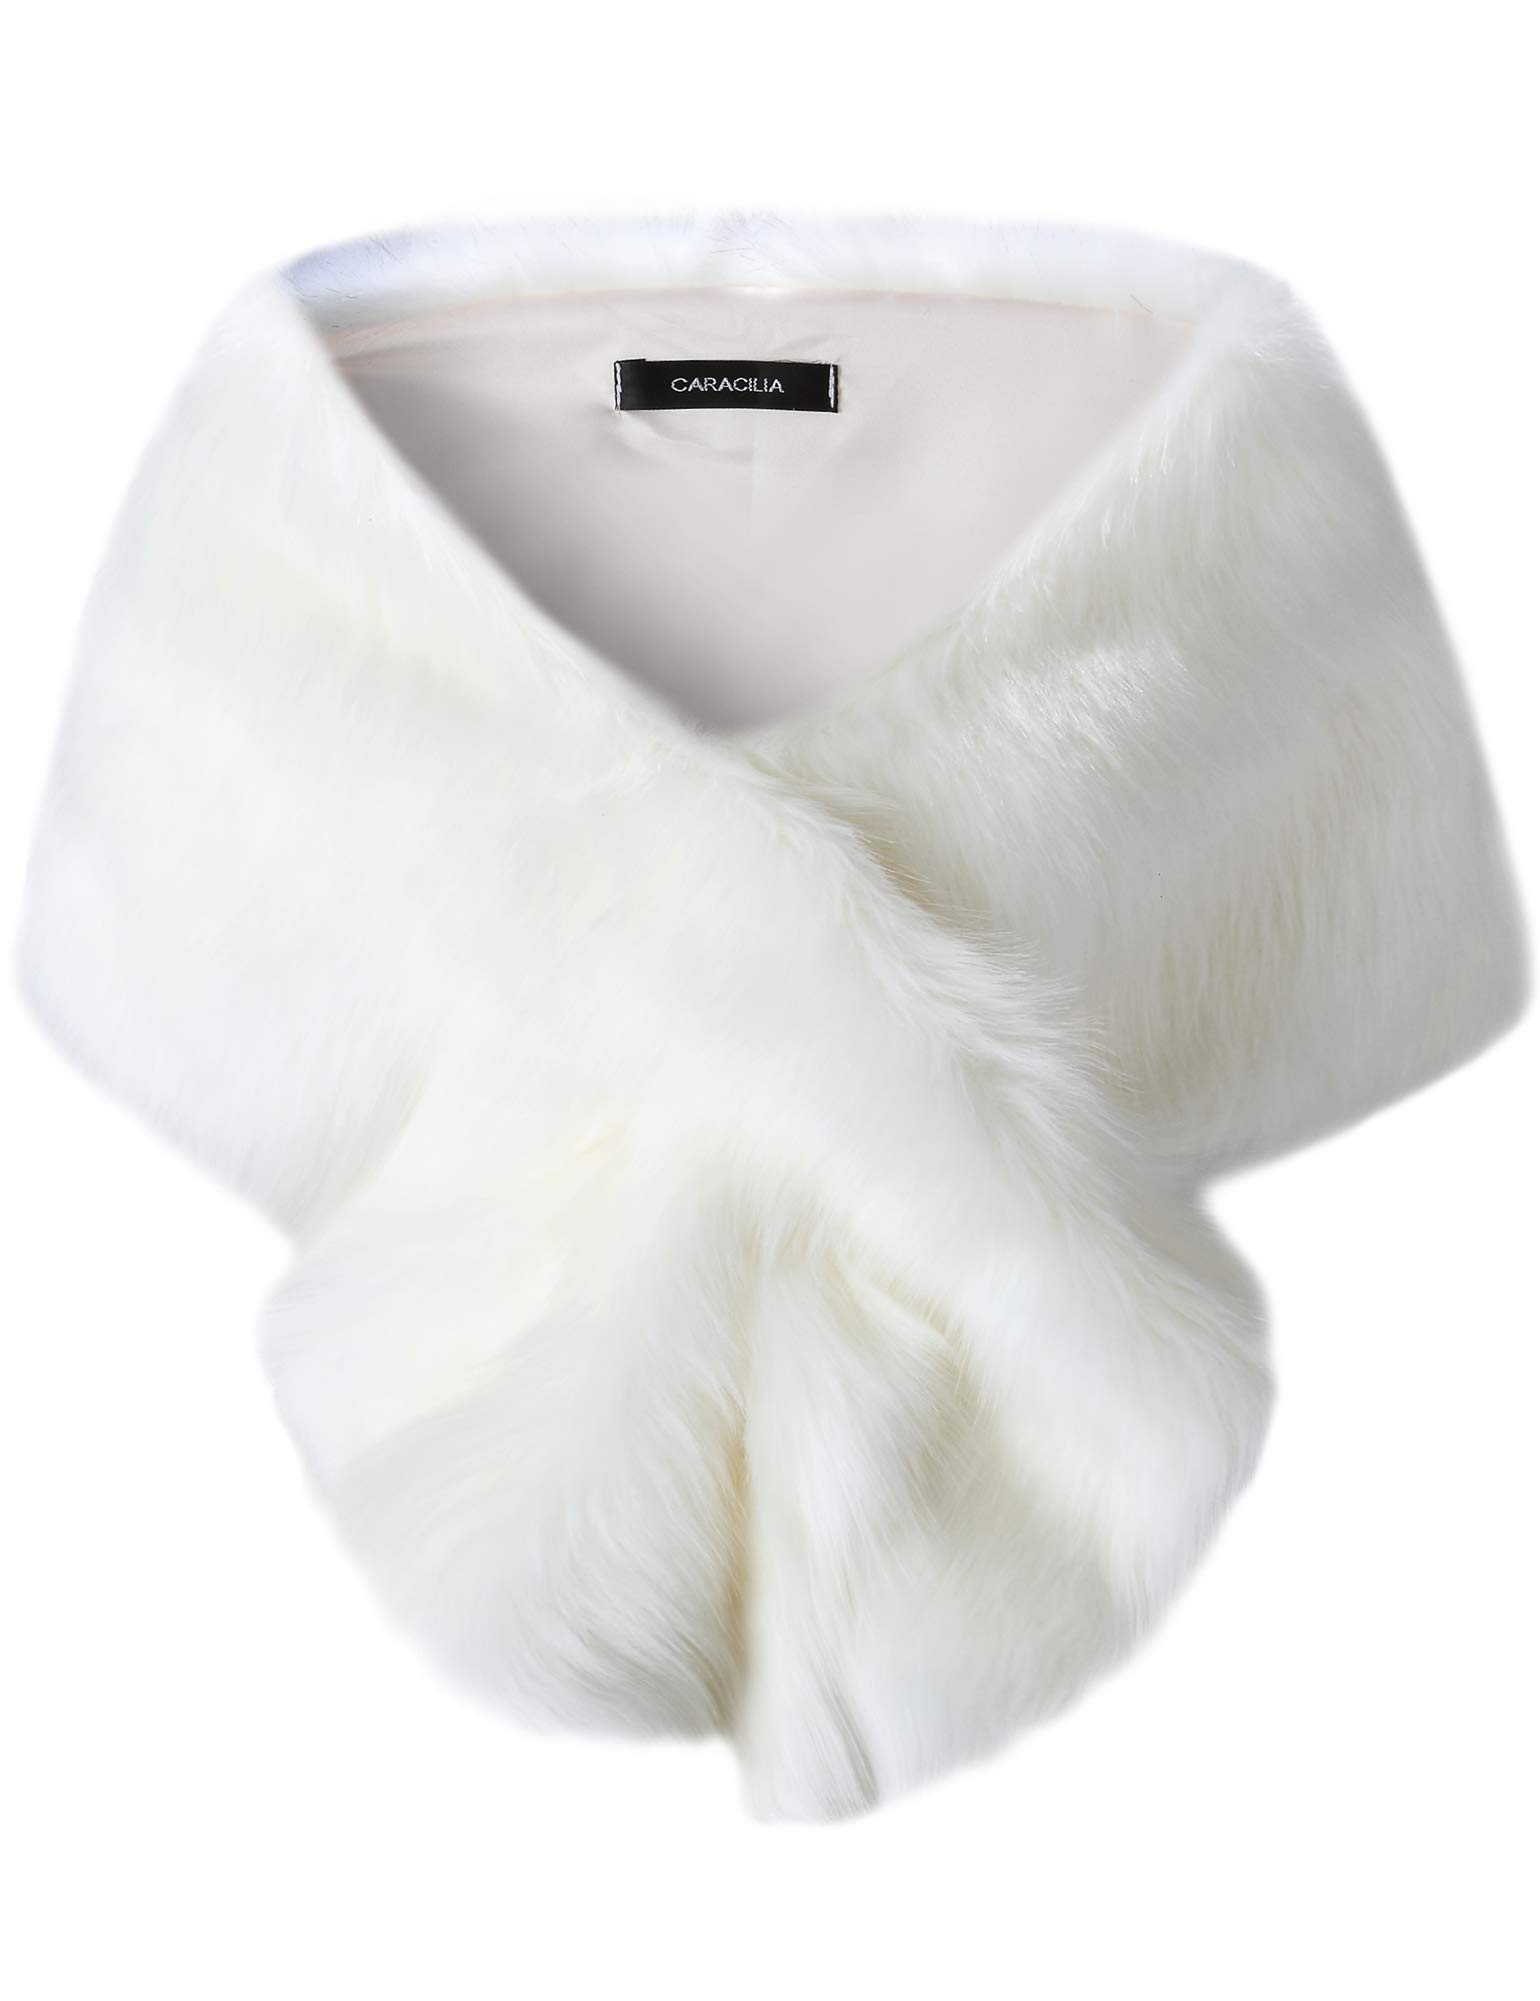 Caracilia Women's Faux Fur Bridal Wedding Shawl and Wraps Winter Warm Party Evening Fur Stole changmaobai CAFB3, White/Long Hair, Small by Caracilia